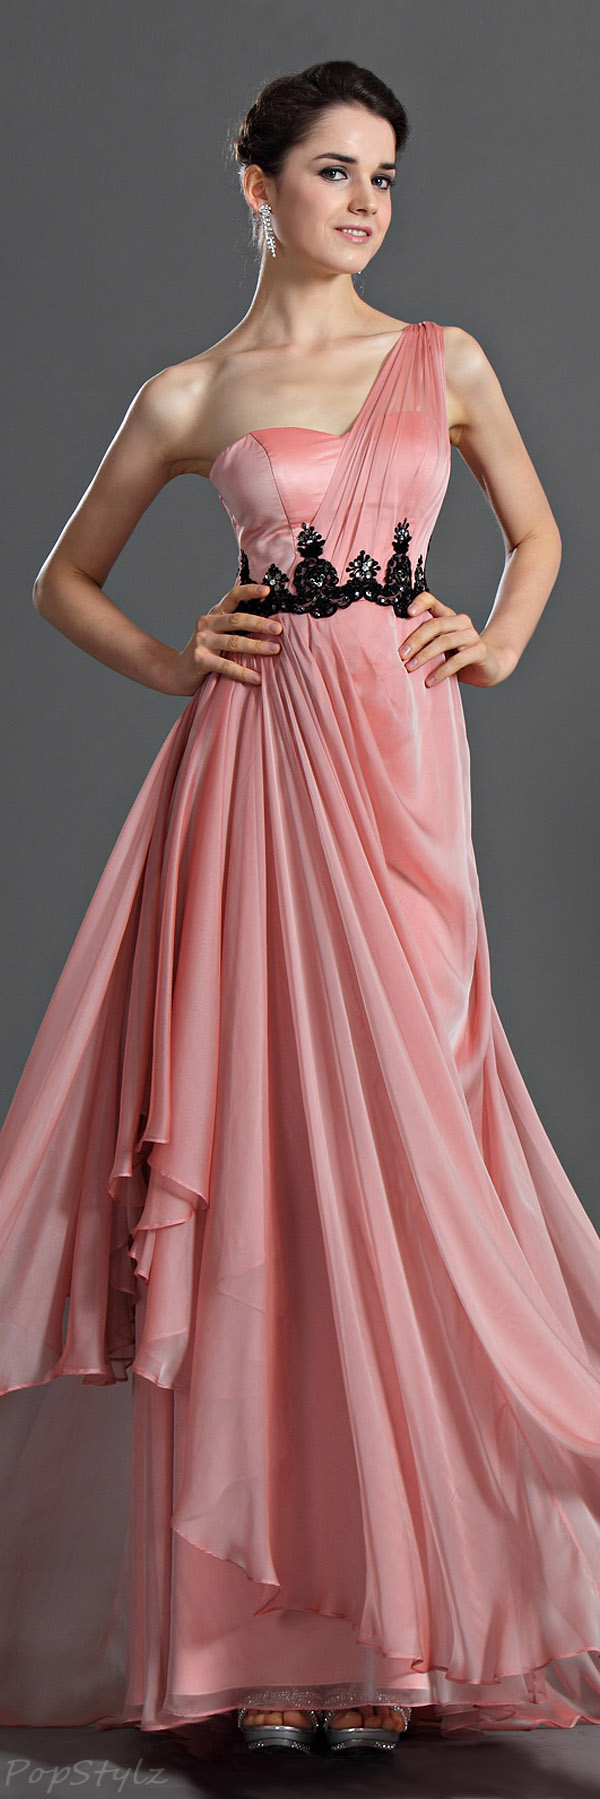 eDressit 00122101 Evening Gown